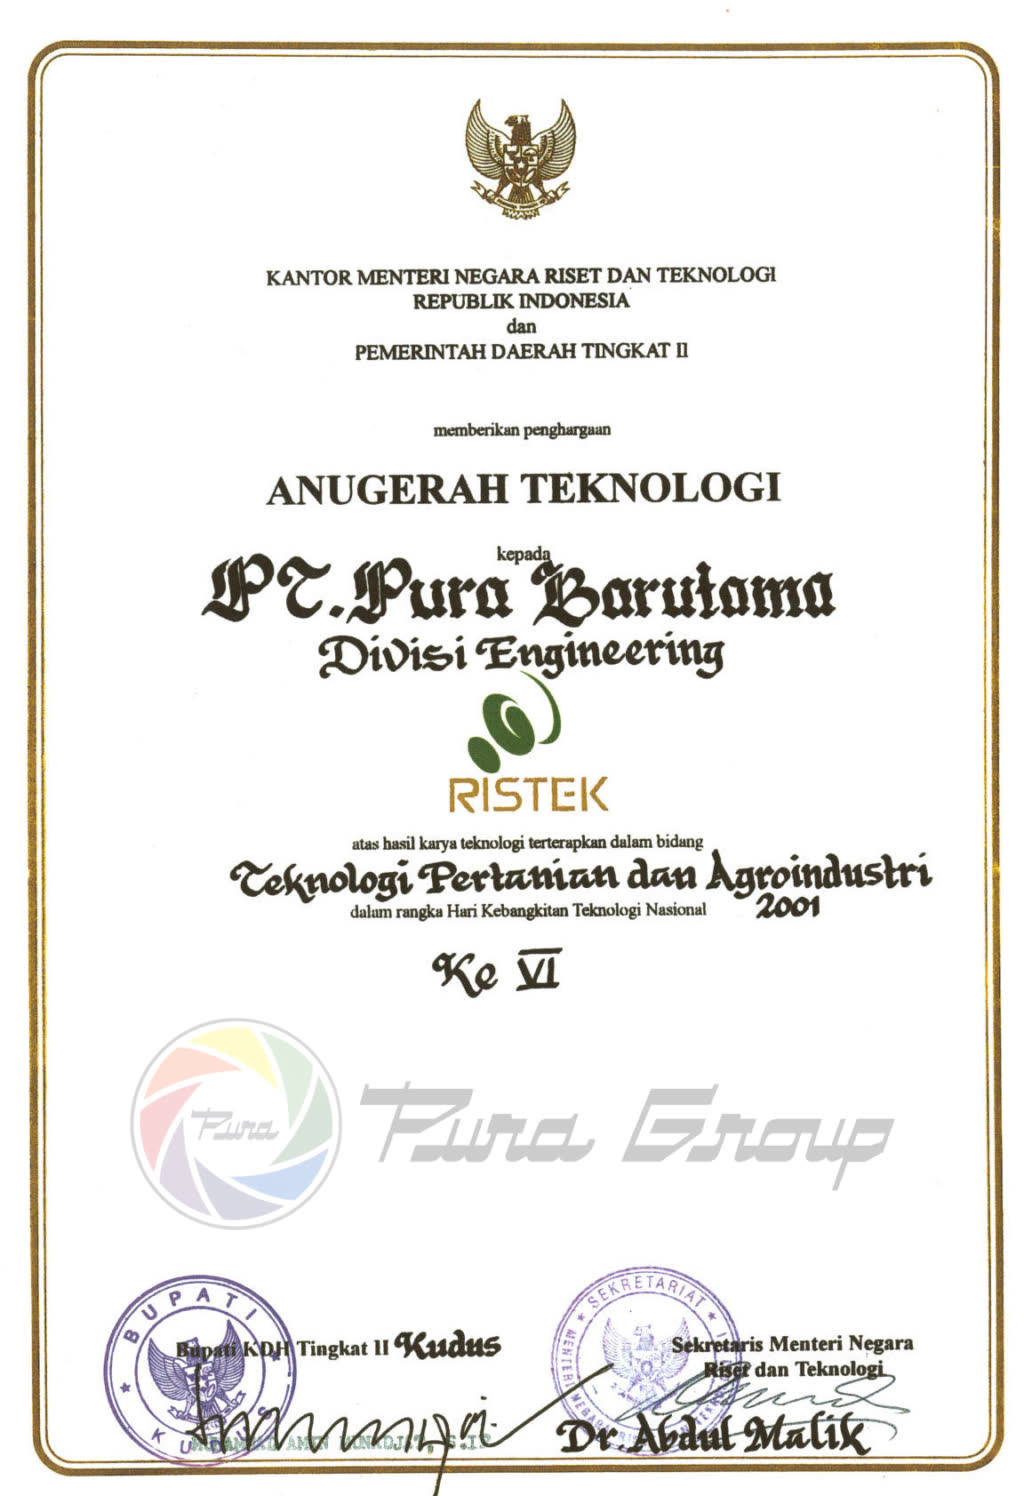 RESEARCH AND TECHNOLOGY MINISTRY AWARD 2001